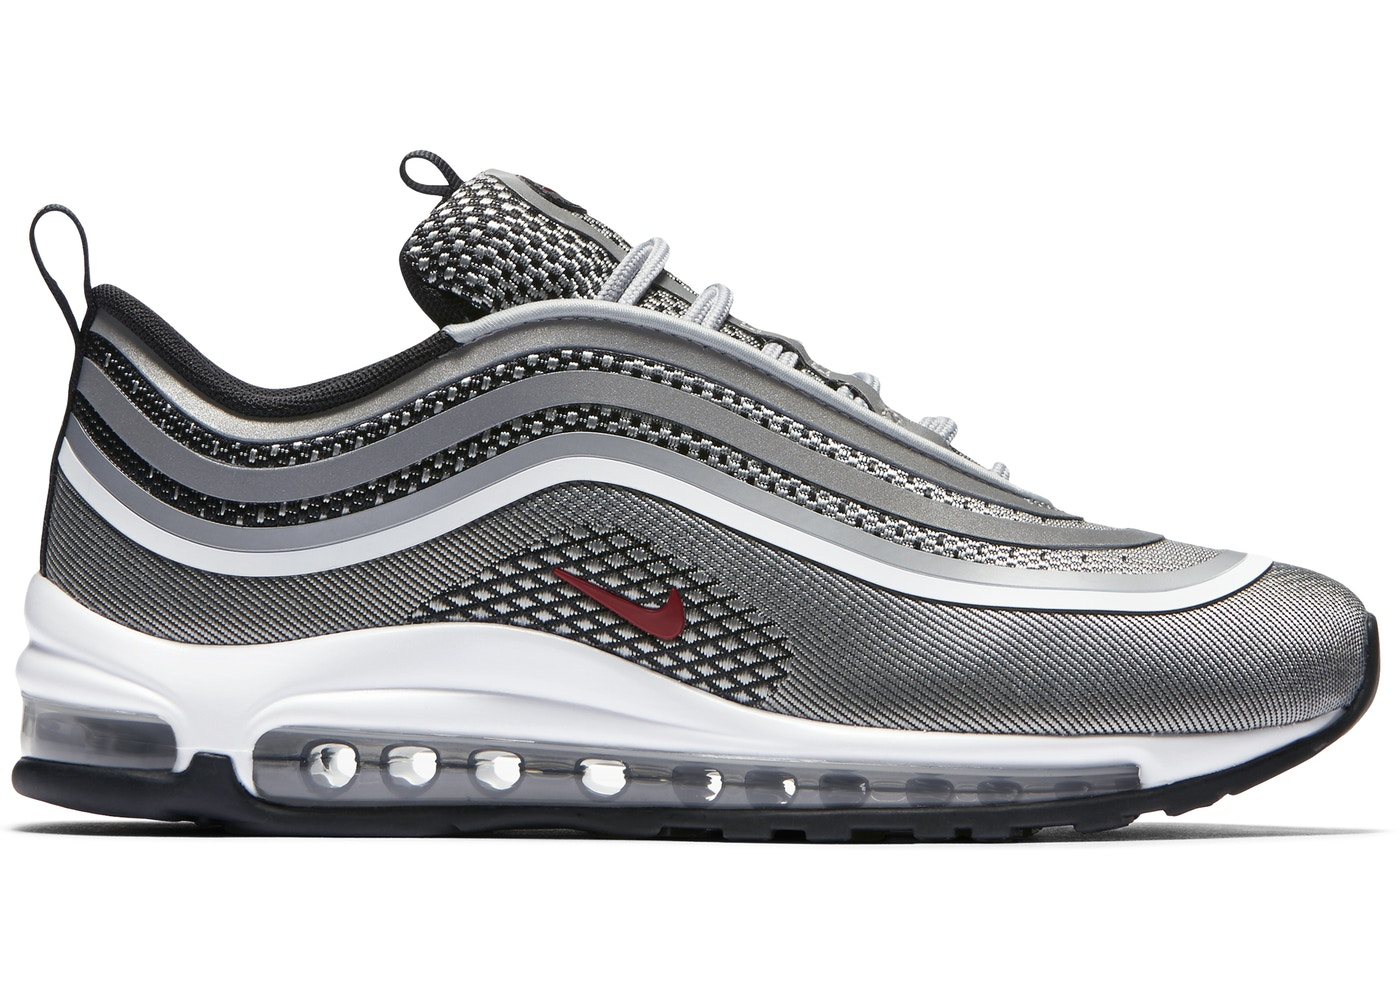 quality design 2e17d 27eb7 Air Max 97 Ultra 17 Silver Bullet (W) - 917704-002